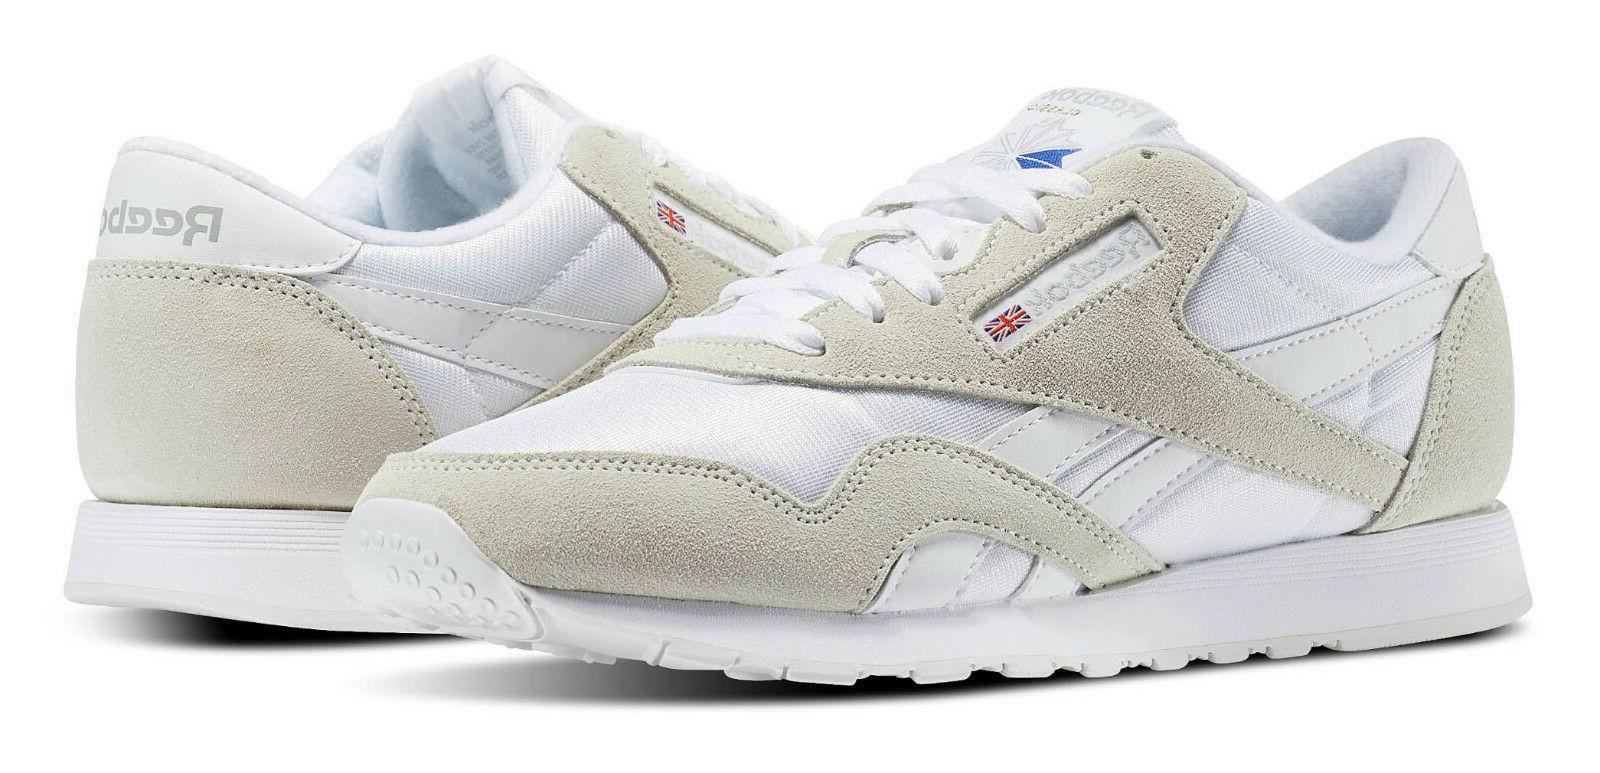 Reebok Classic Nylon Light Grey, White Mens Running Tennis S